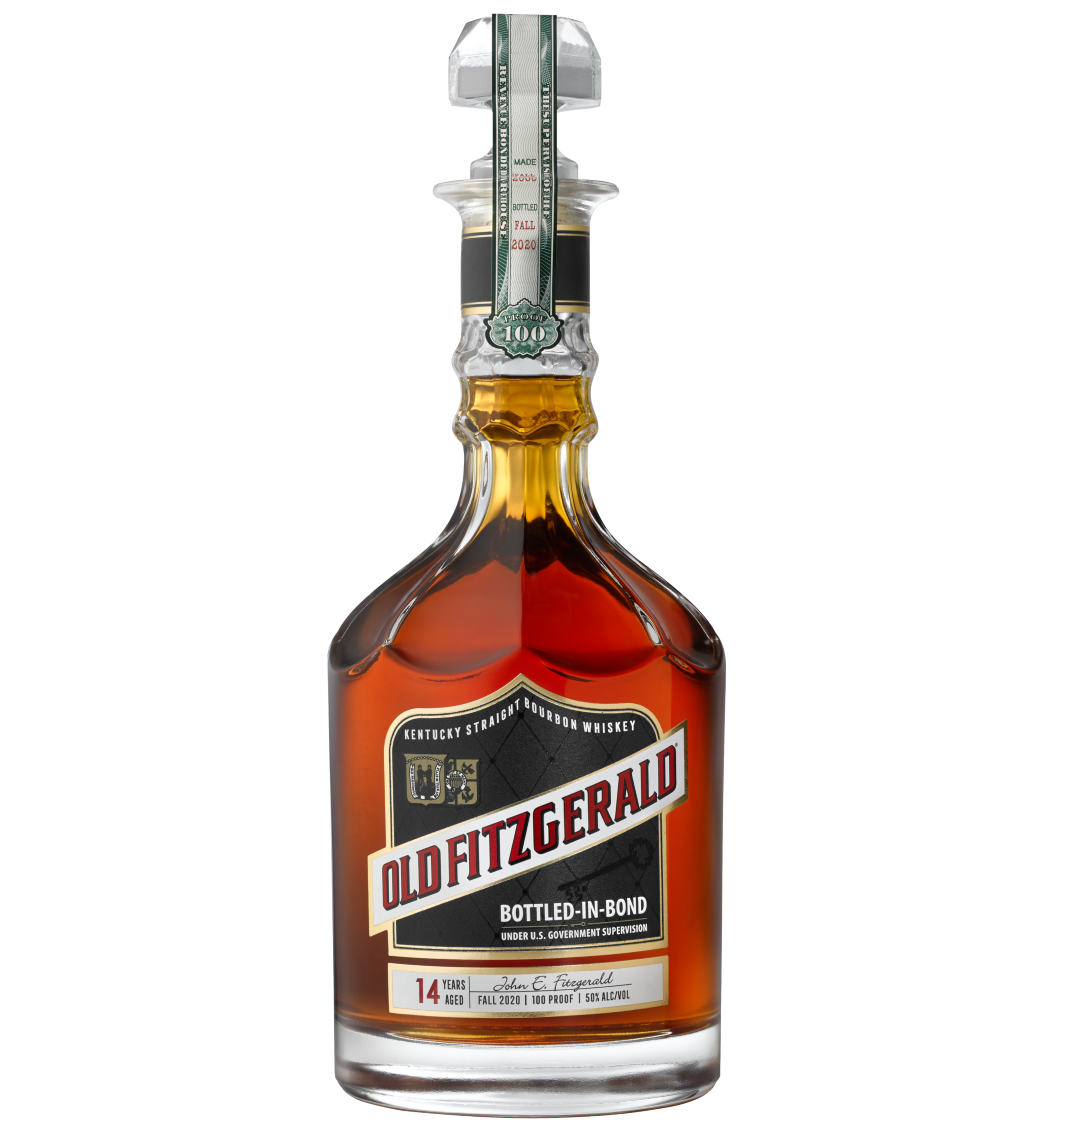 Old Fitzgerald Bottled-in-Bond 14 Years Old Fall 2020 Edition